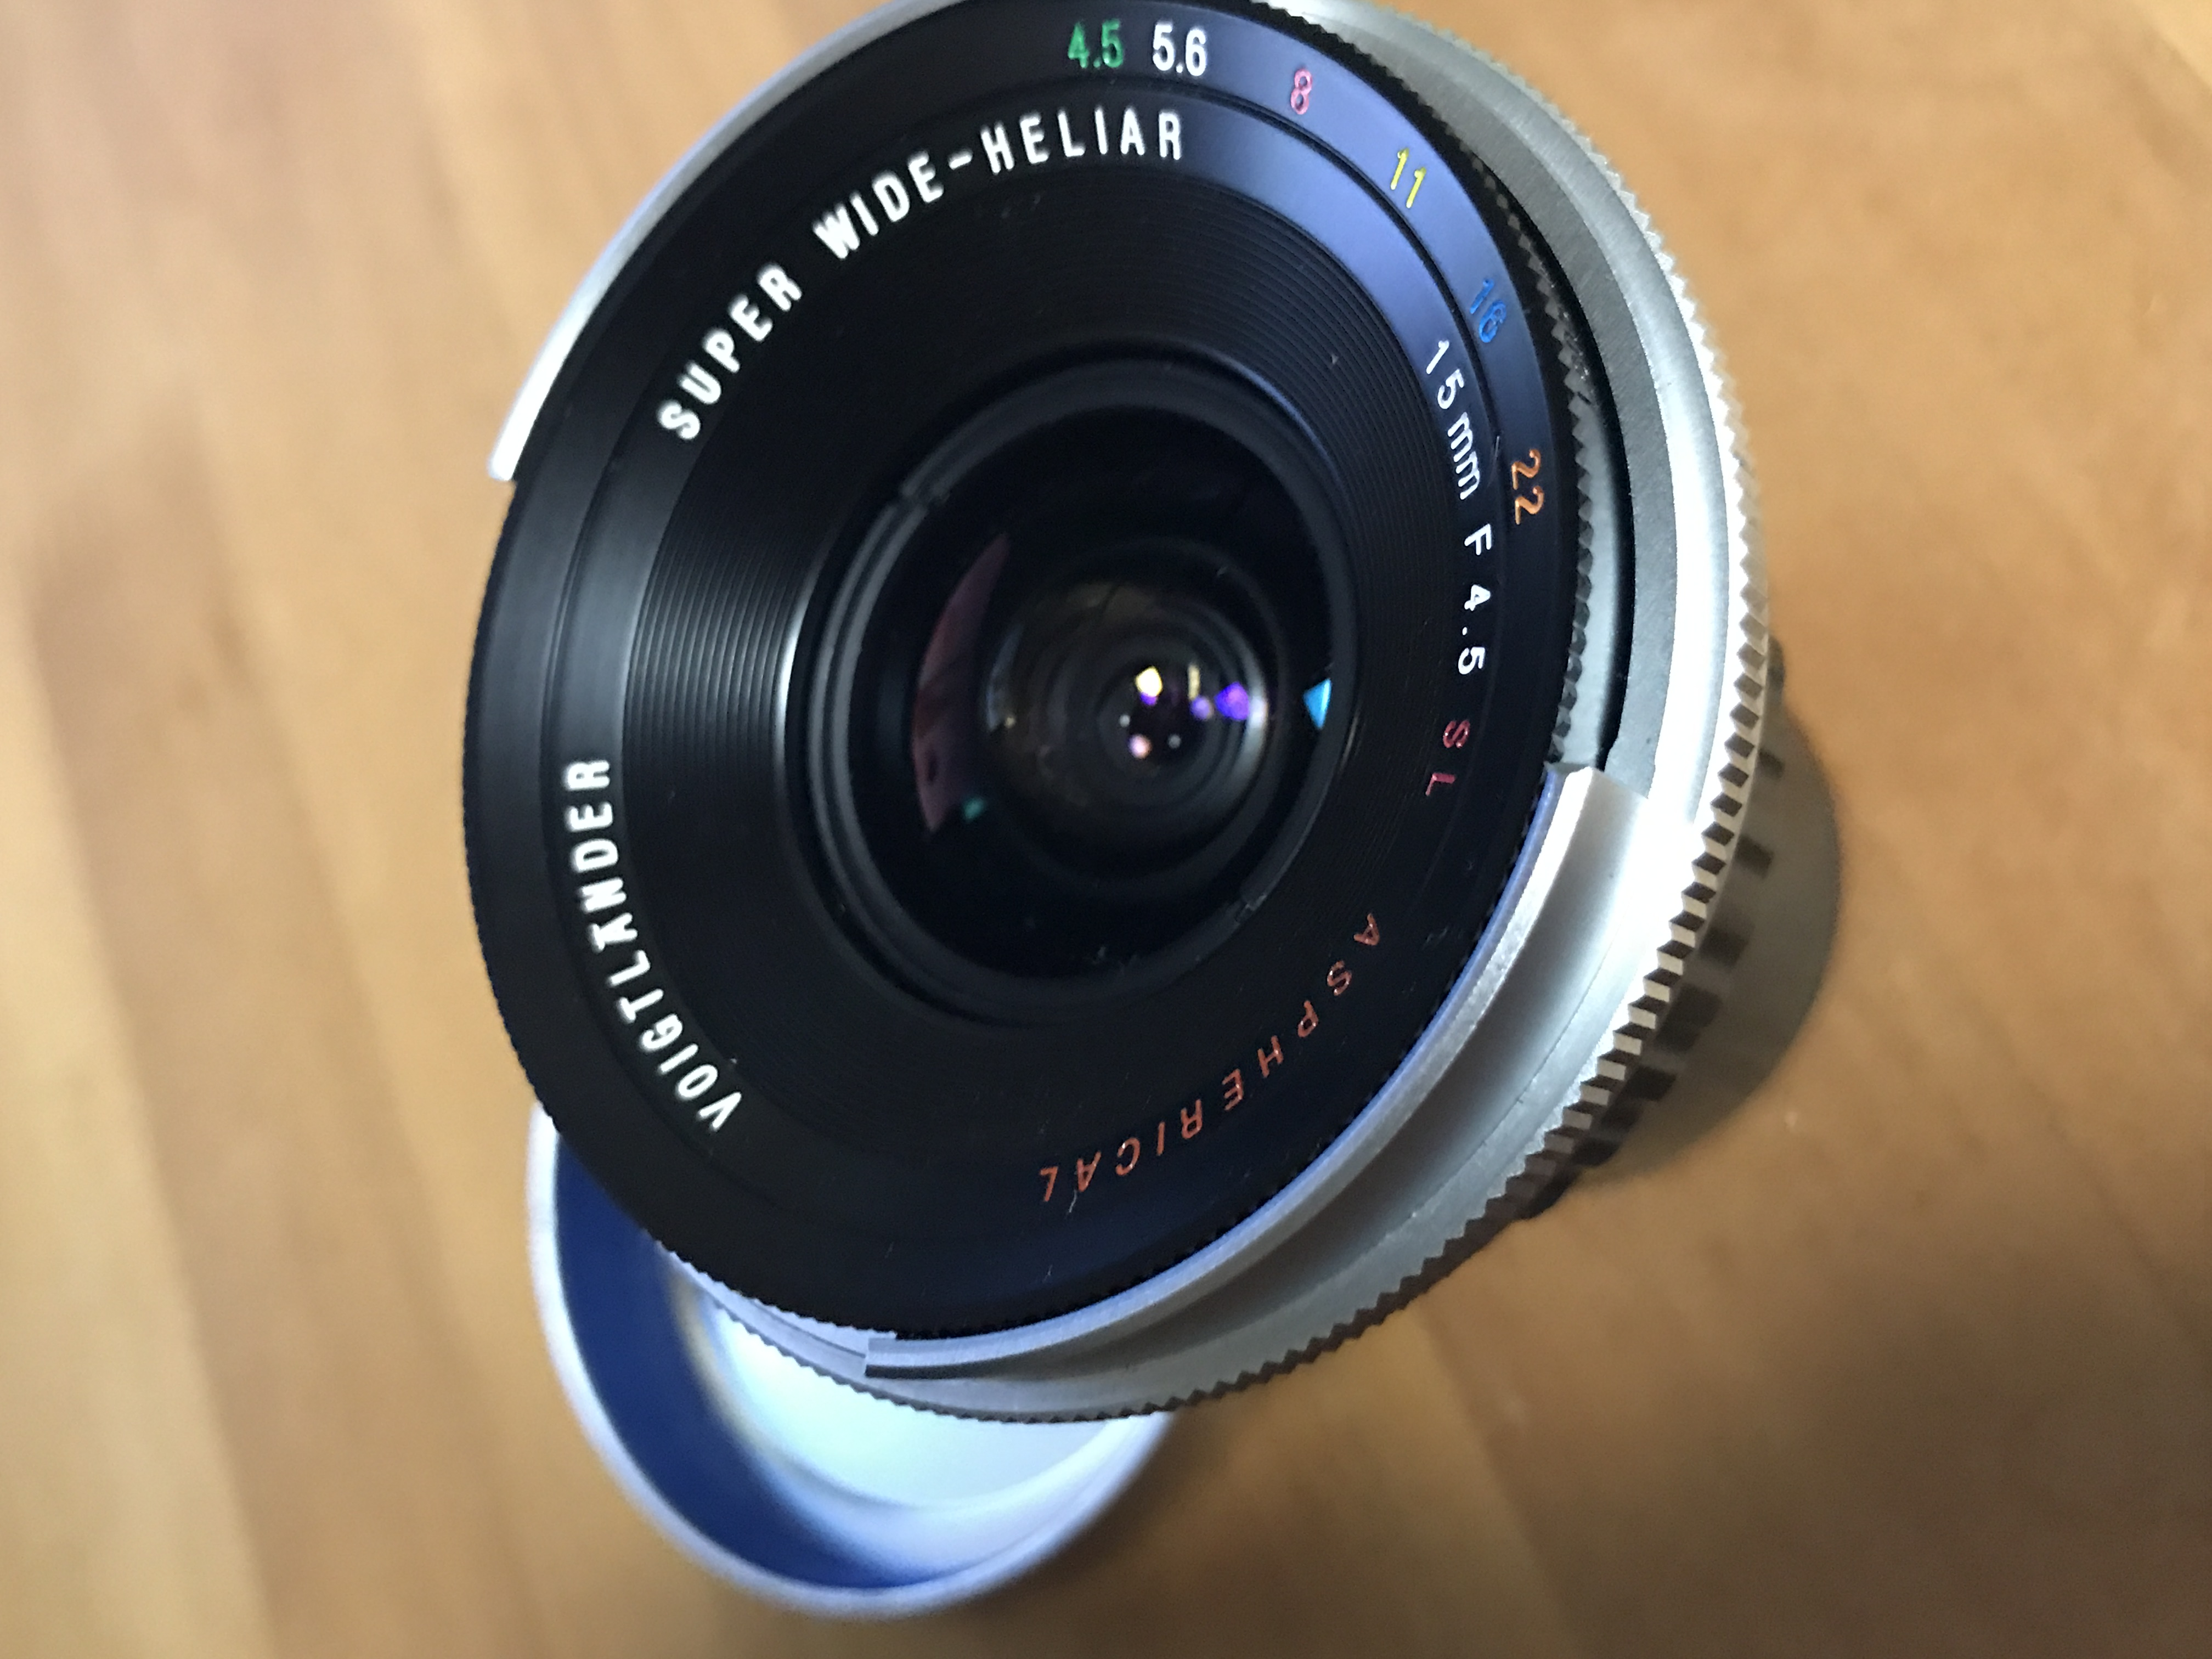 Voigtlander SUPER WIDE HELIAR 15mm F4.5 SL Aspherical F-Mount